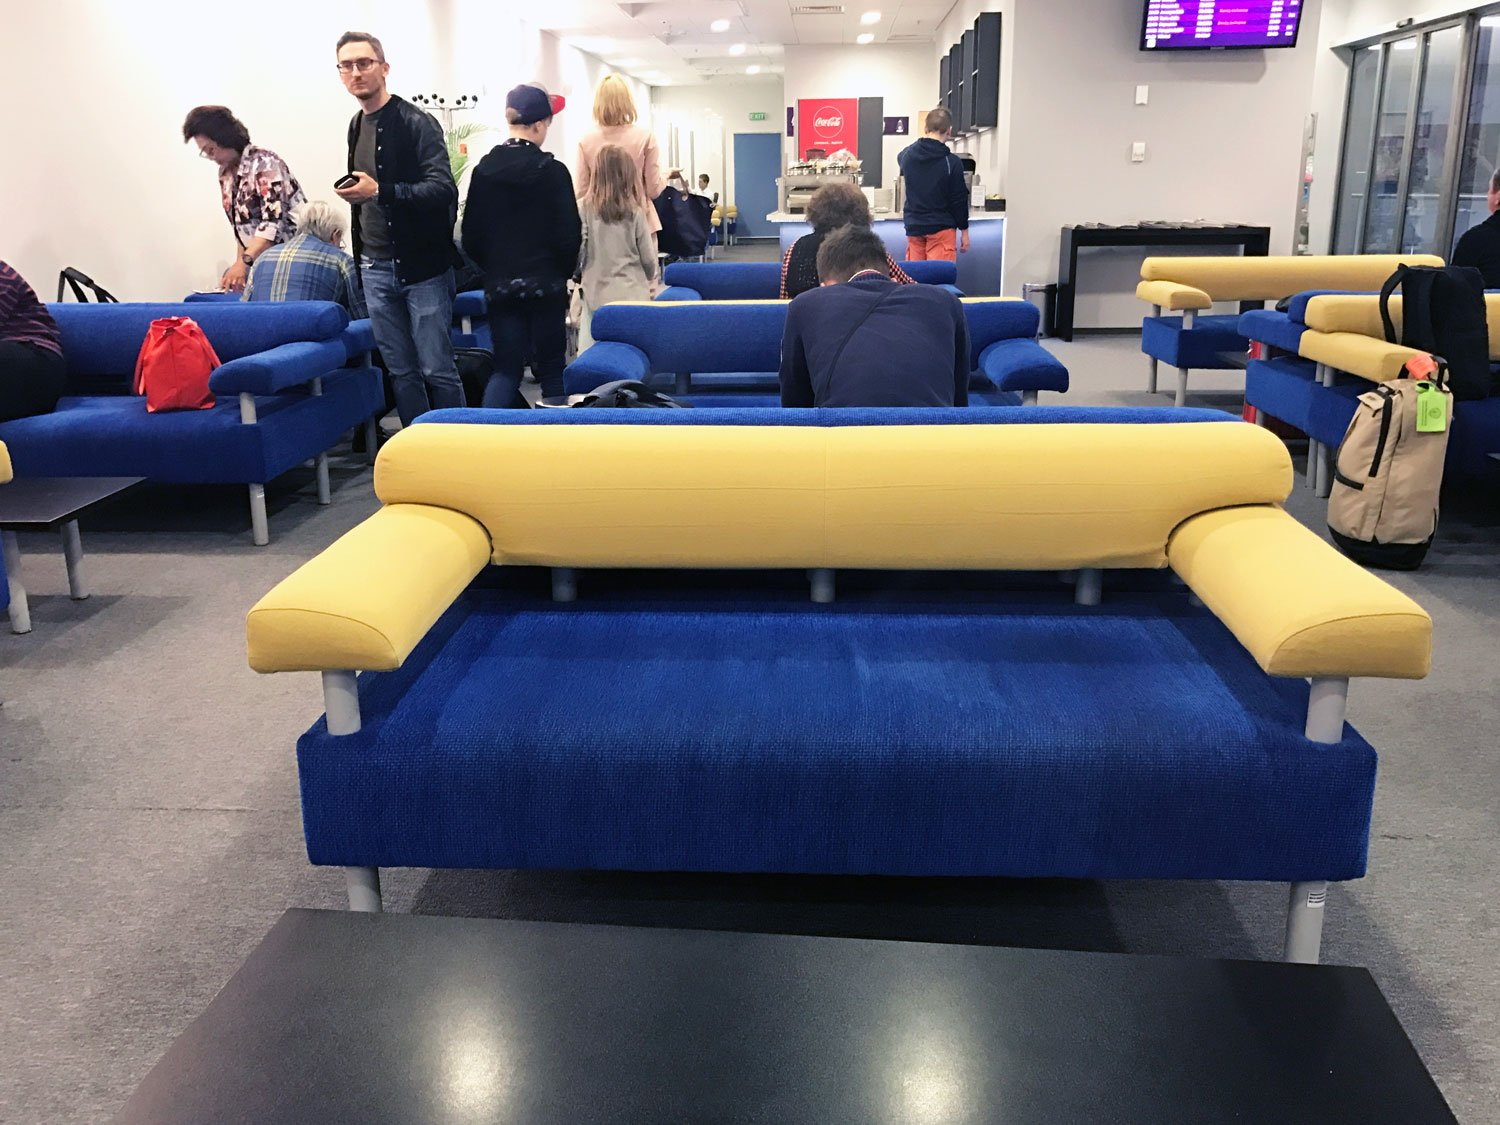 business lounge kiev ukraine airport couch